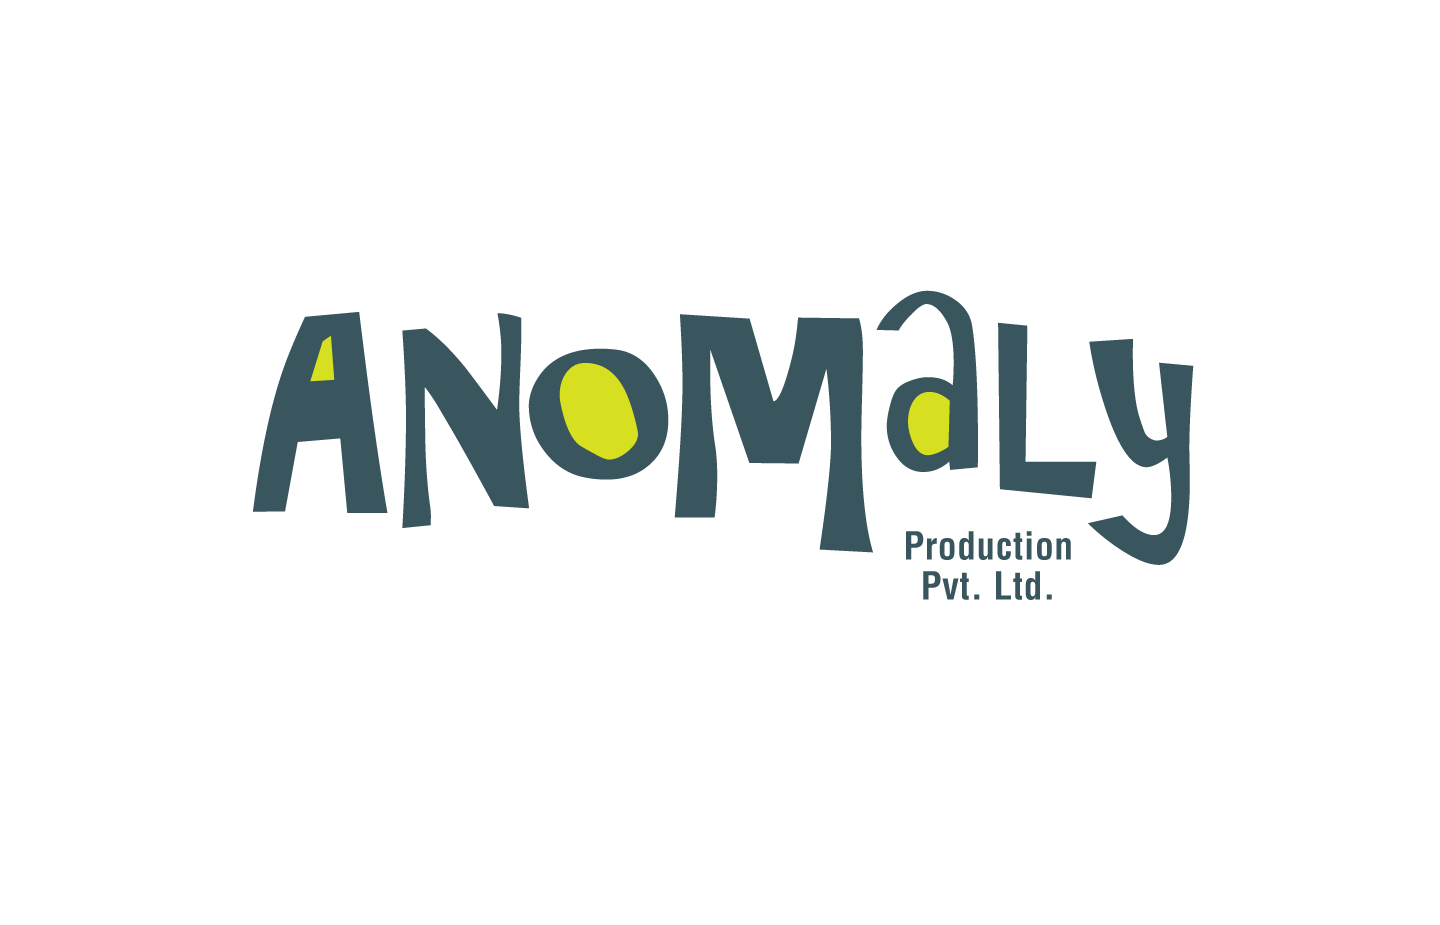 Anomaly Production Pvt Ltd